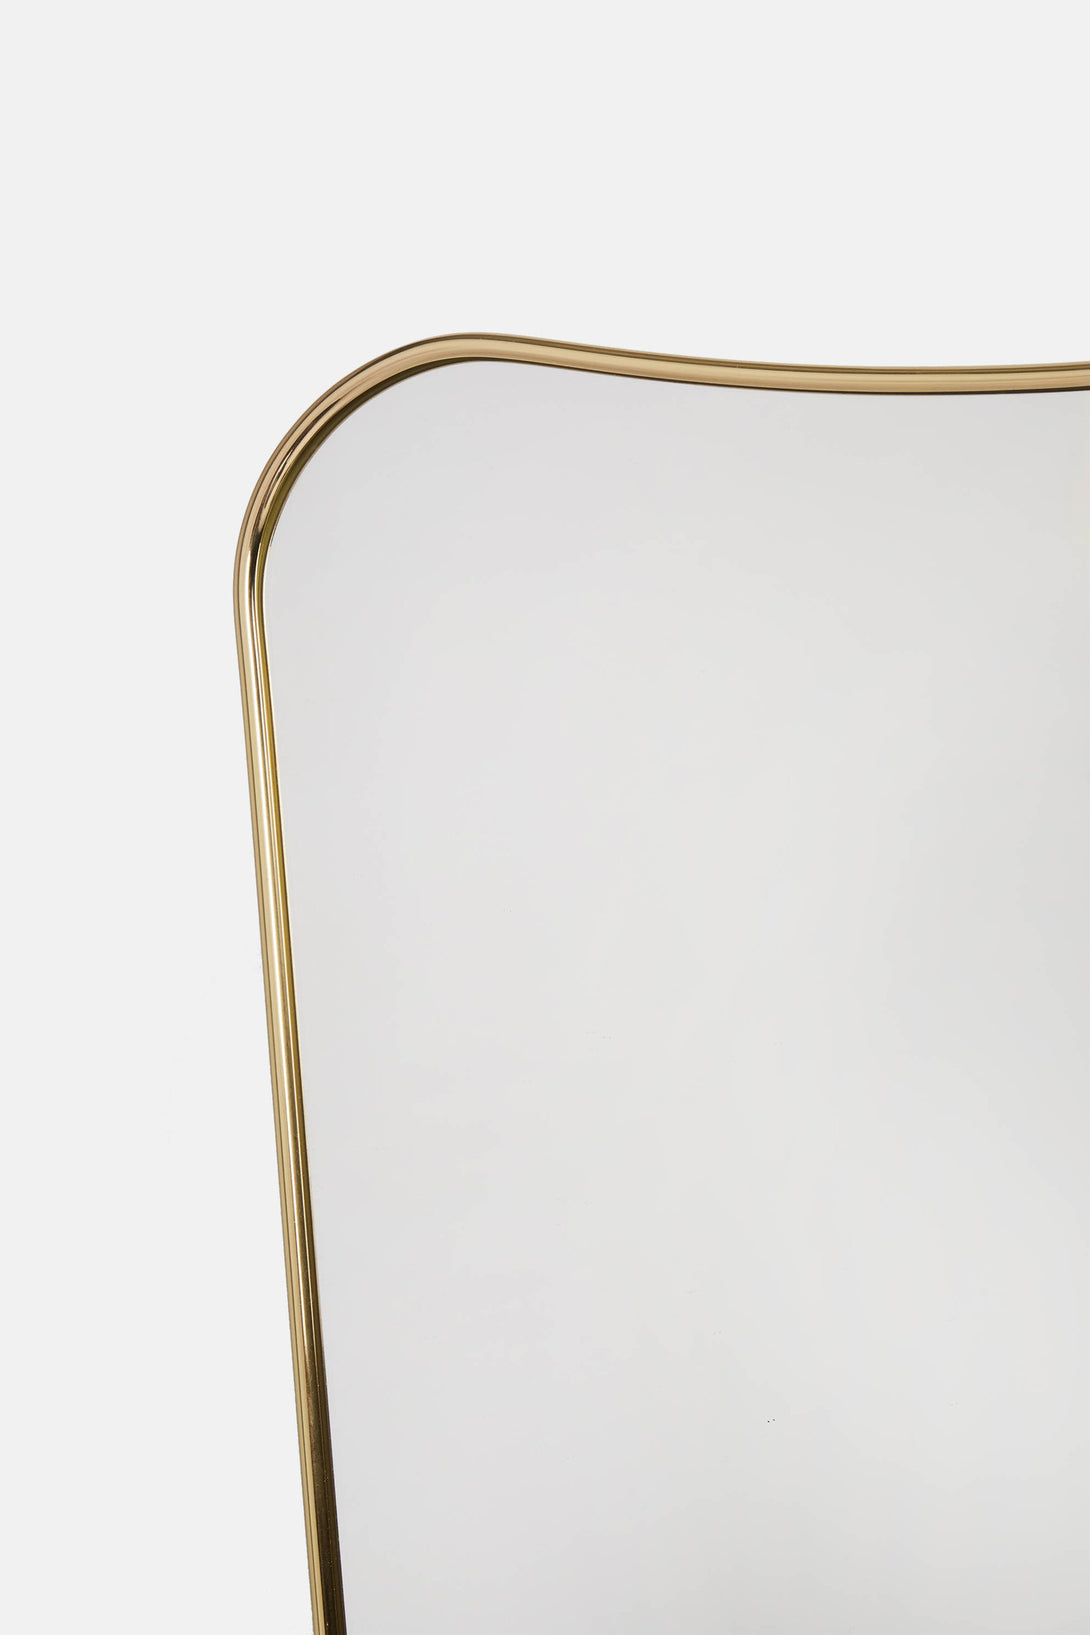 Fa 33 Full Length Wall Mirror By Gio Ponti The Line